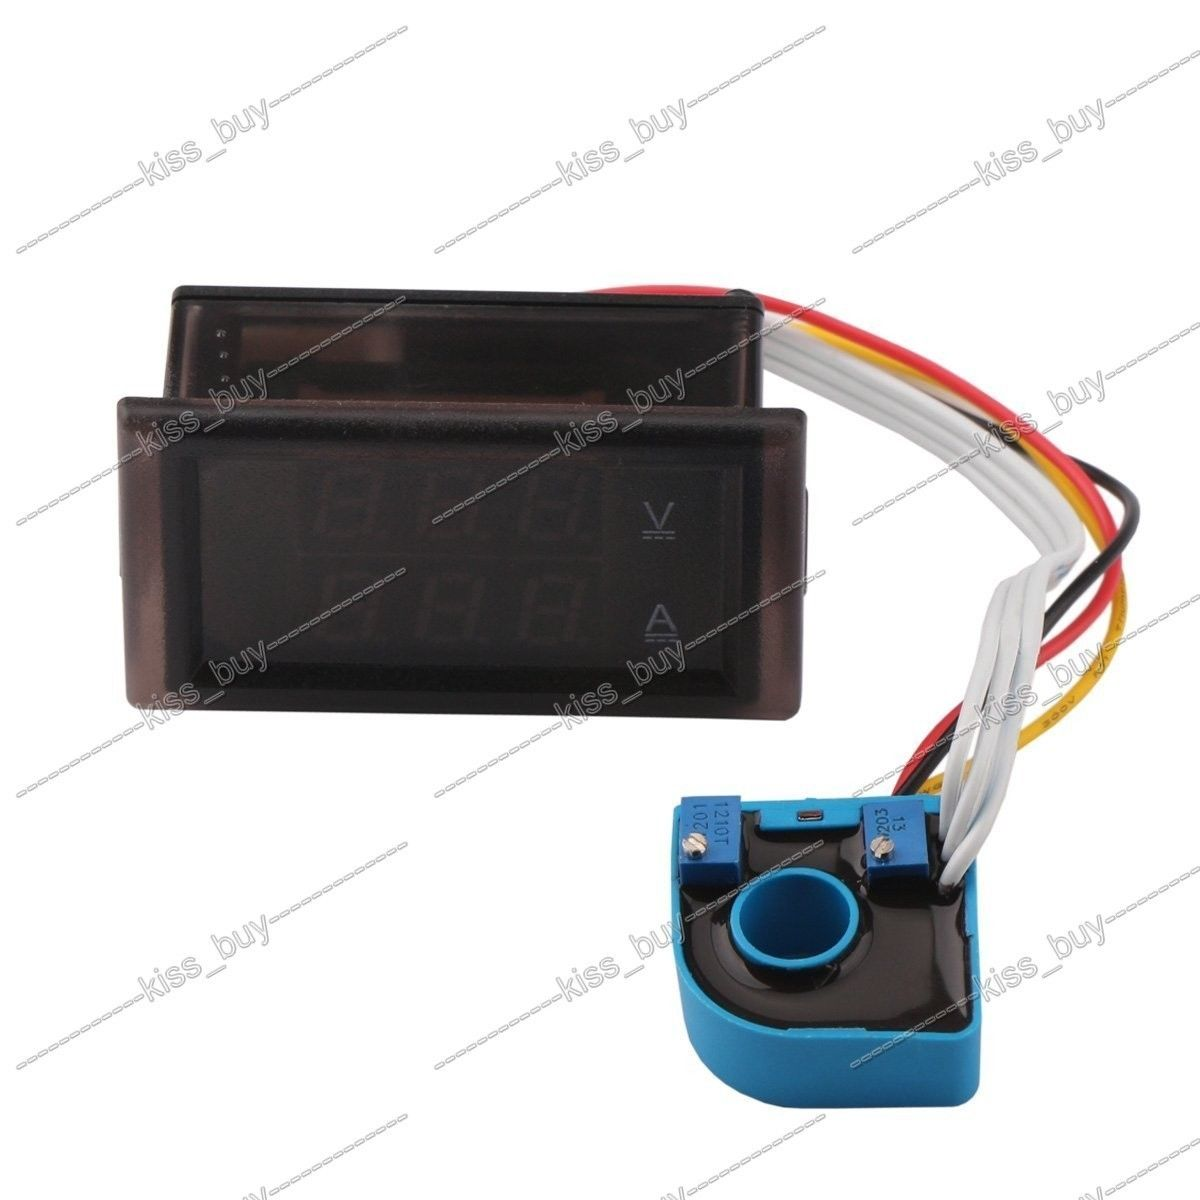 Dc 300v 100a Digital Voltmeter Ammeter Charge Discharge Monitor Meter Also Led Matrix Circuit Diagram On Solar Battery Dual Display Voltage Current 12v 24v In Integrated Circuits From